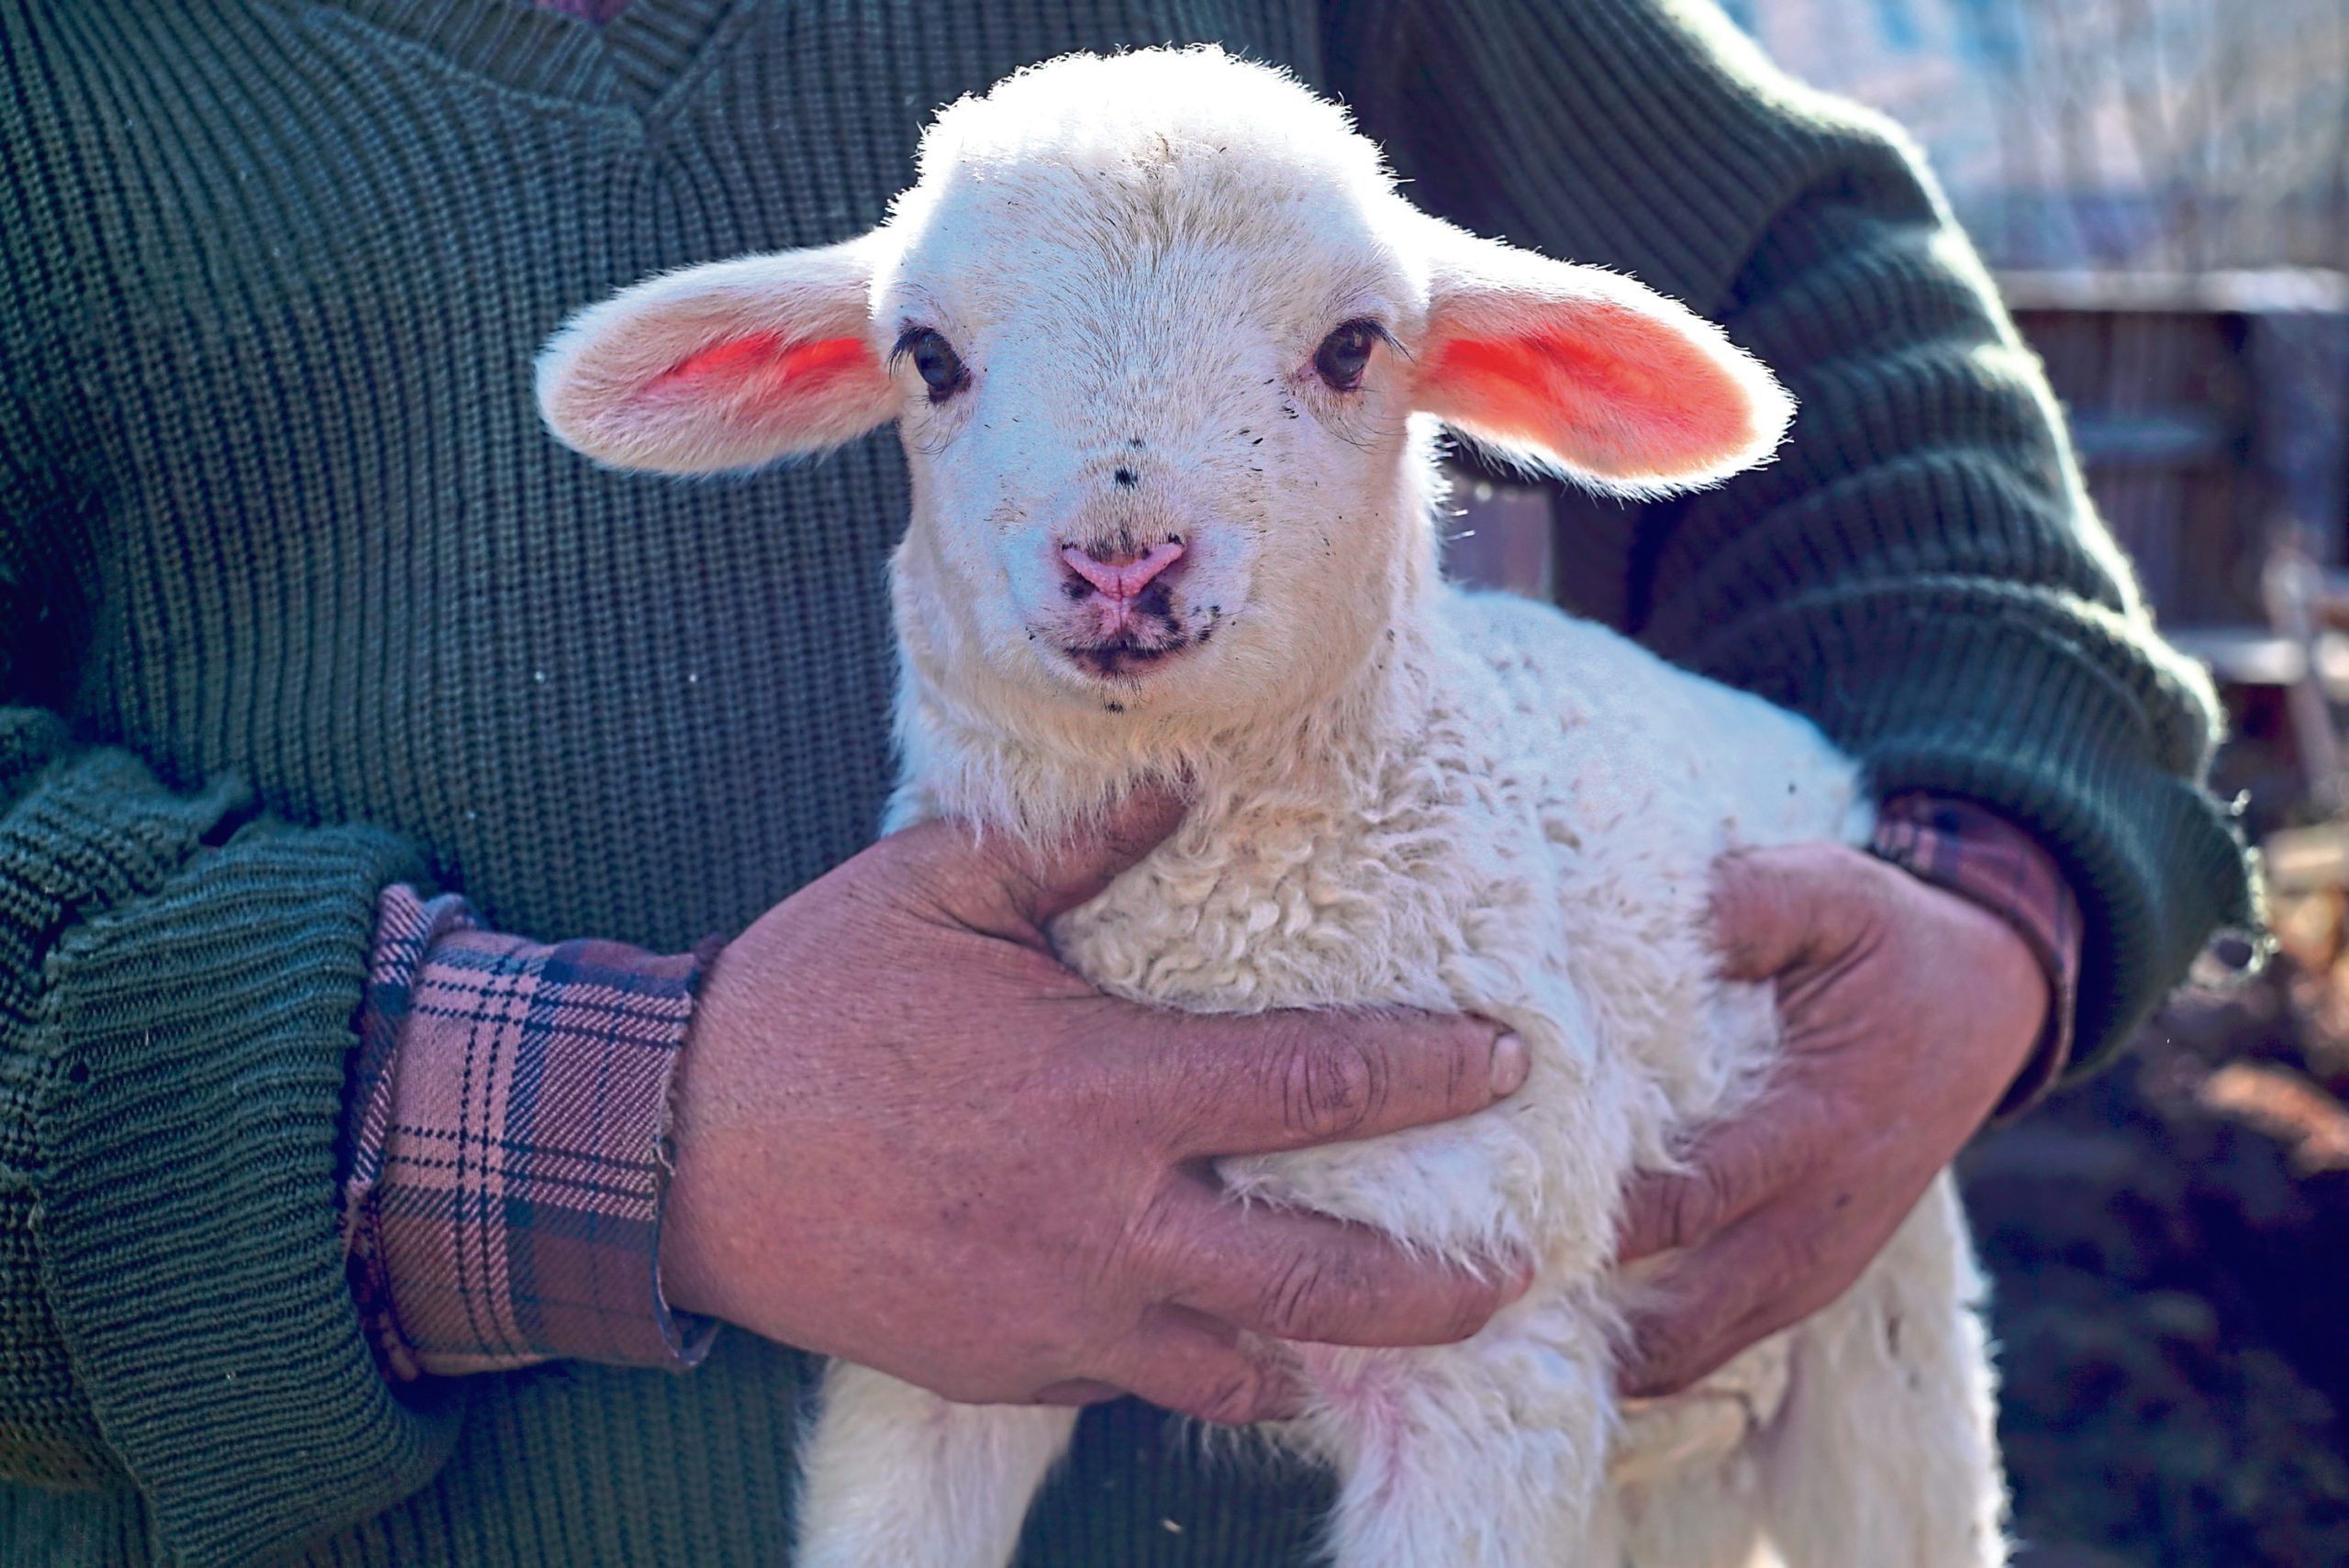 RSABI has urged farmers to look out for signs of stress at lambing.